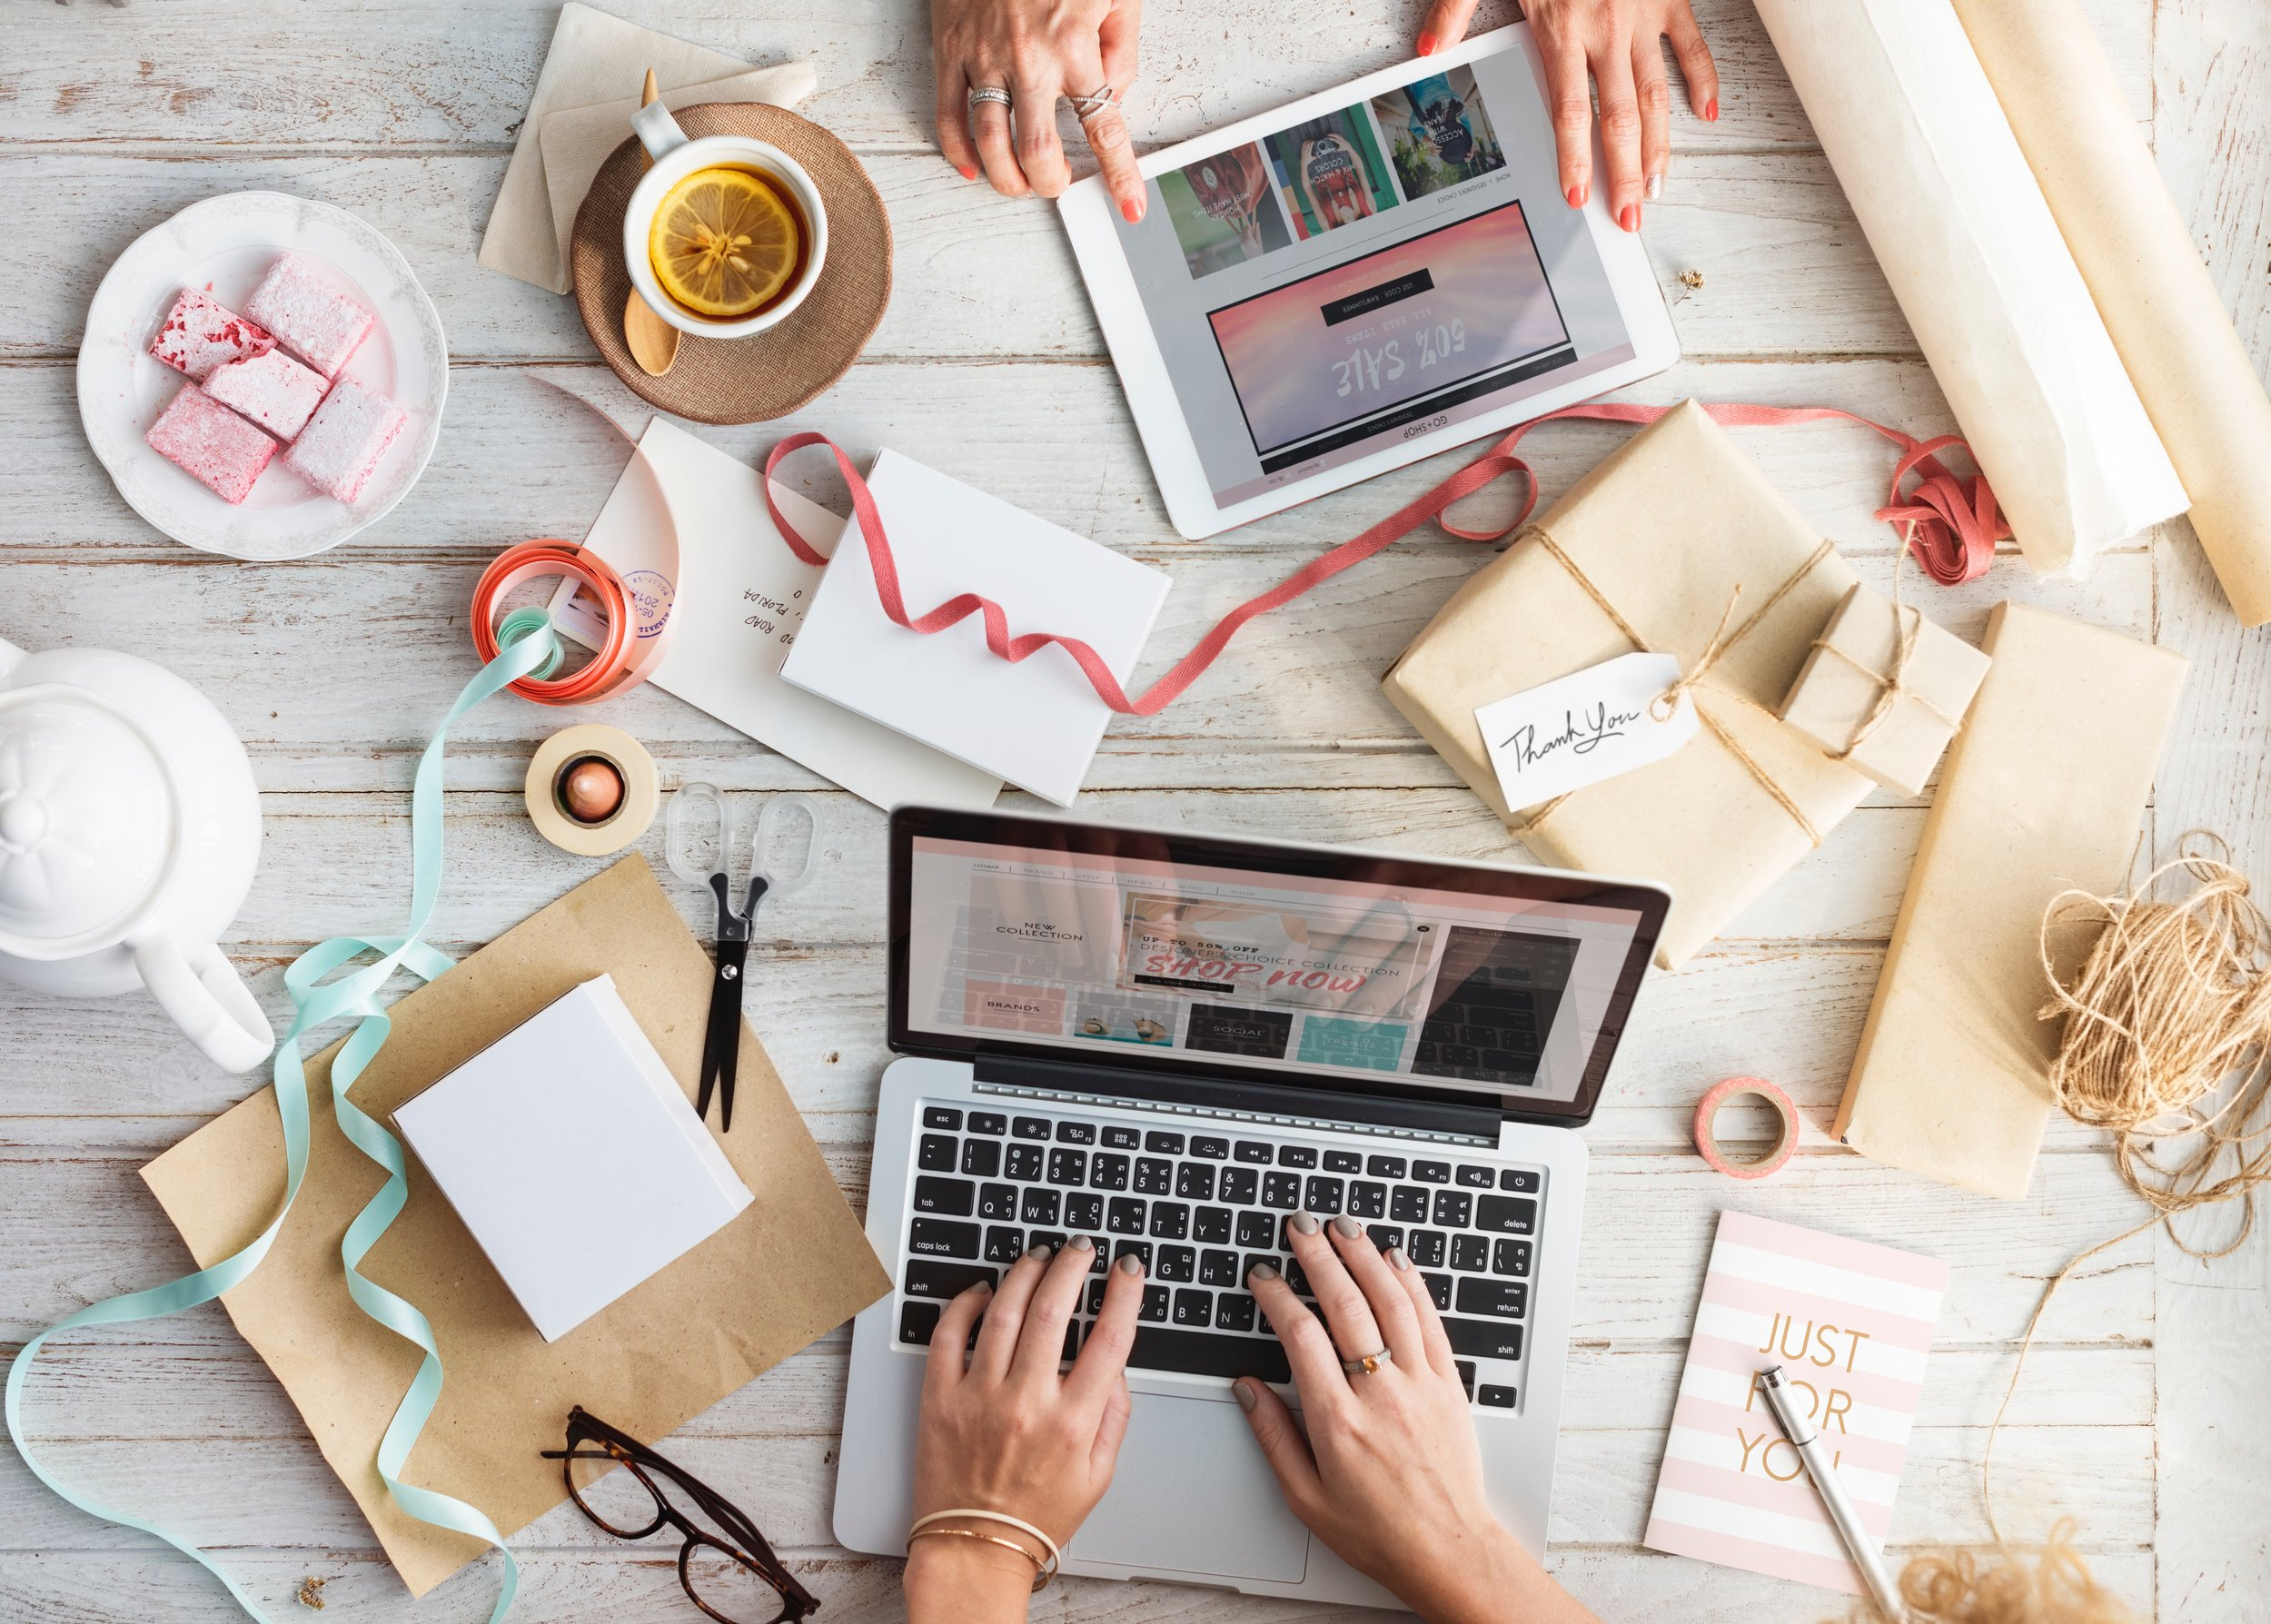 Blogs - According to Social Media B2B, companies that blog generate two thirds more leads per month than those that don't. Blogging is a great way to engage with your customers and demonstrate expertise in a more conversational way.